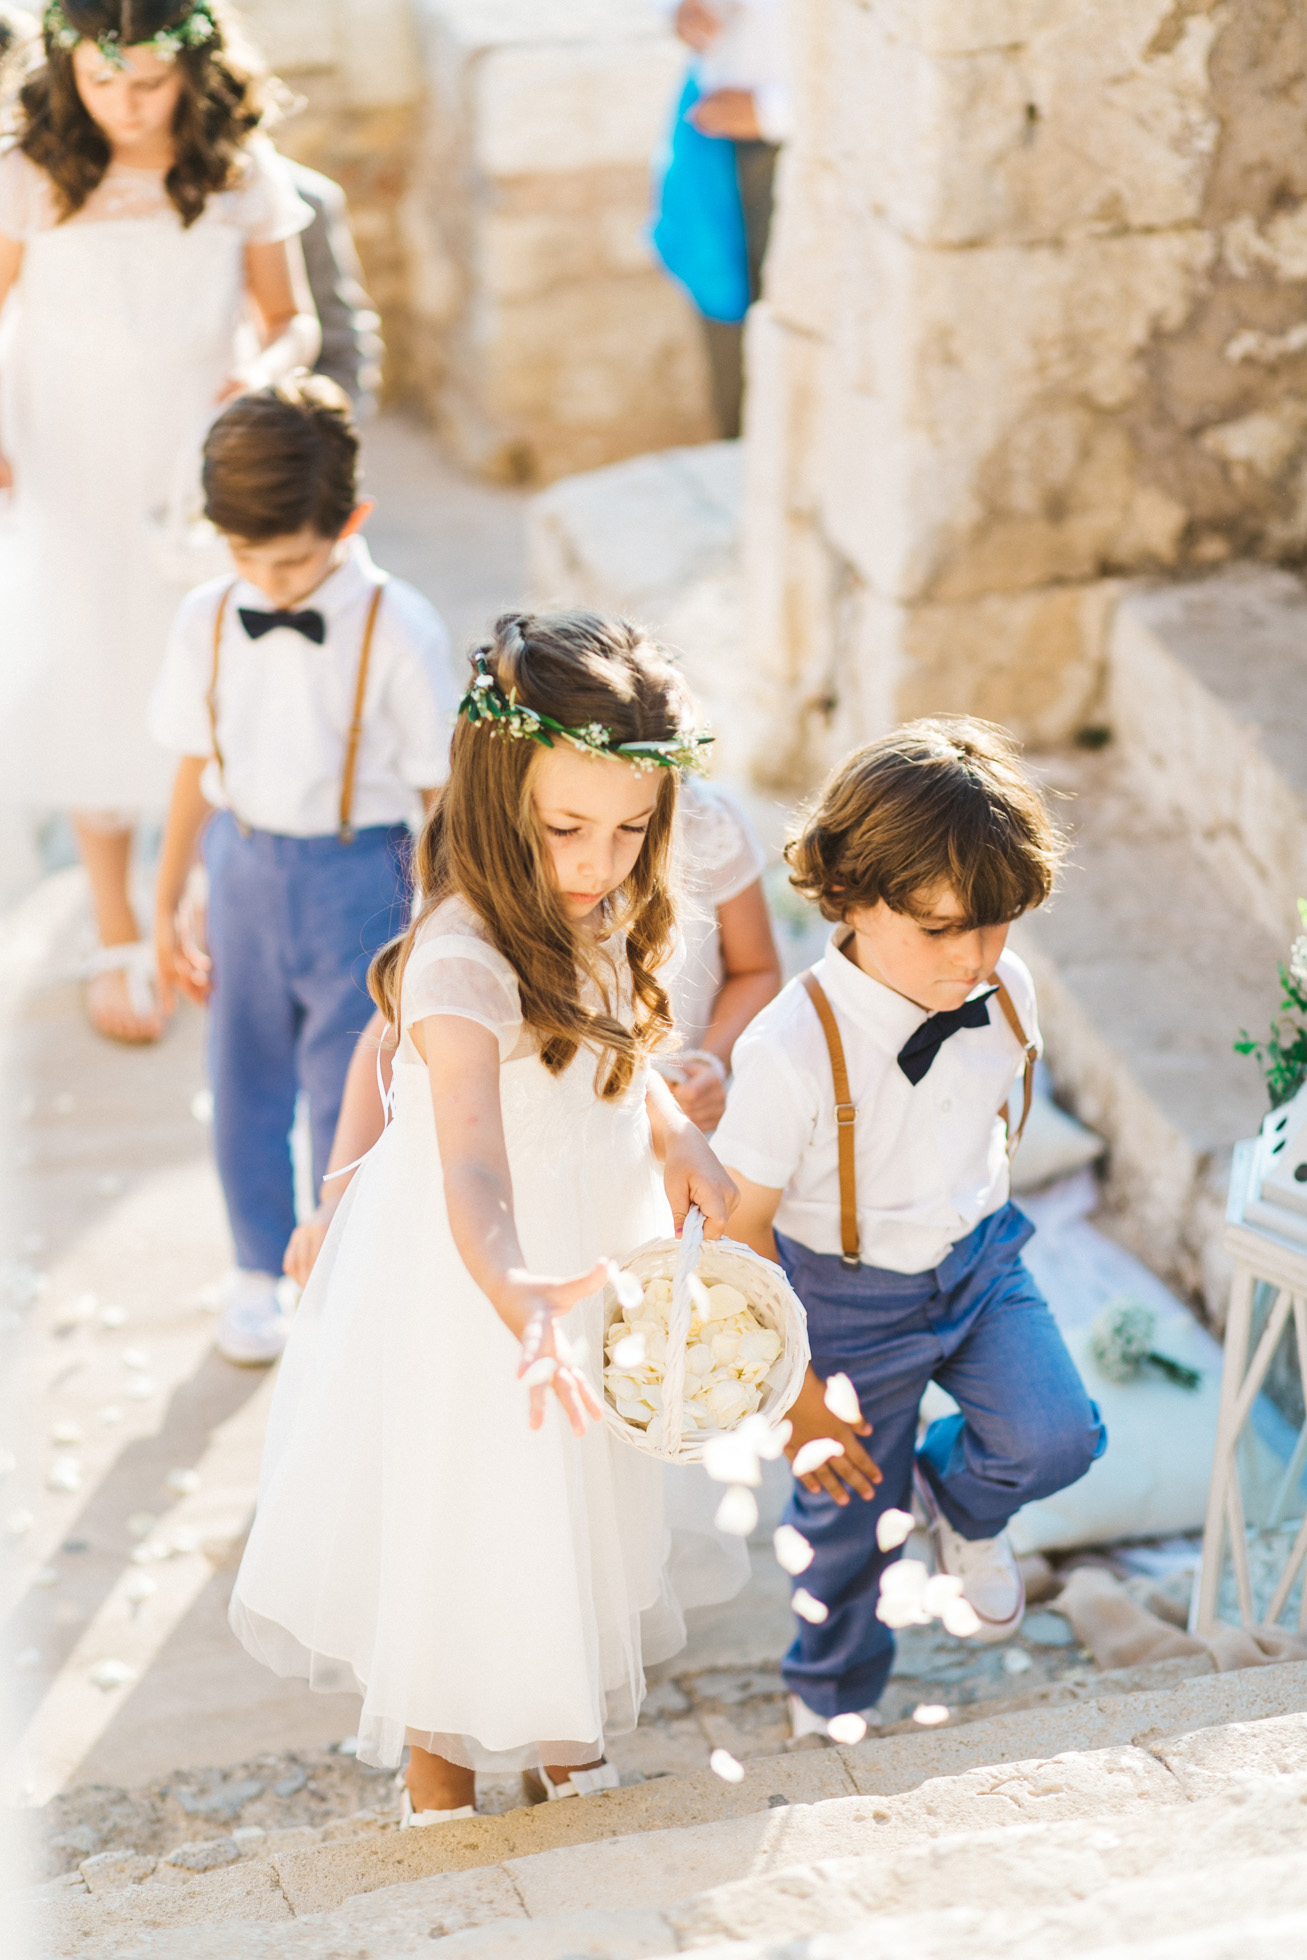 Greek orthodox wedding ceremony documentary of a Canadian couple who decided to have their destination wedding held in Rethymno in the island of Crete.